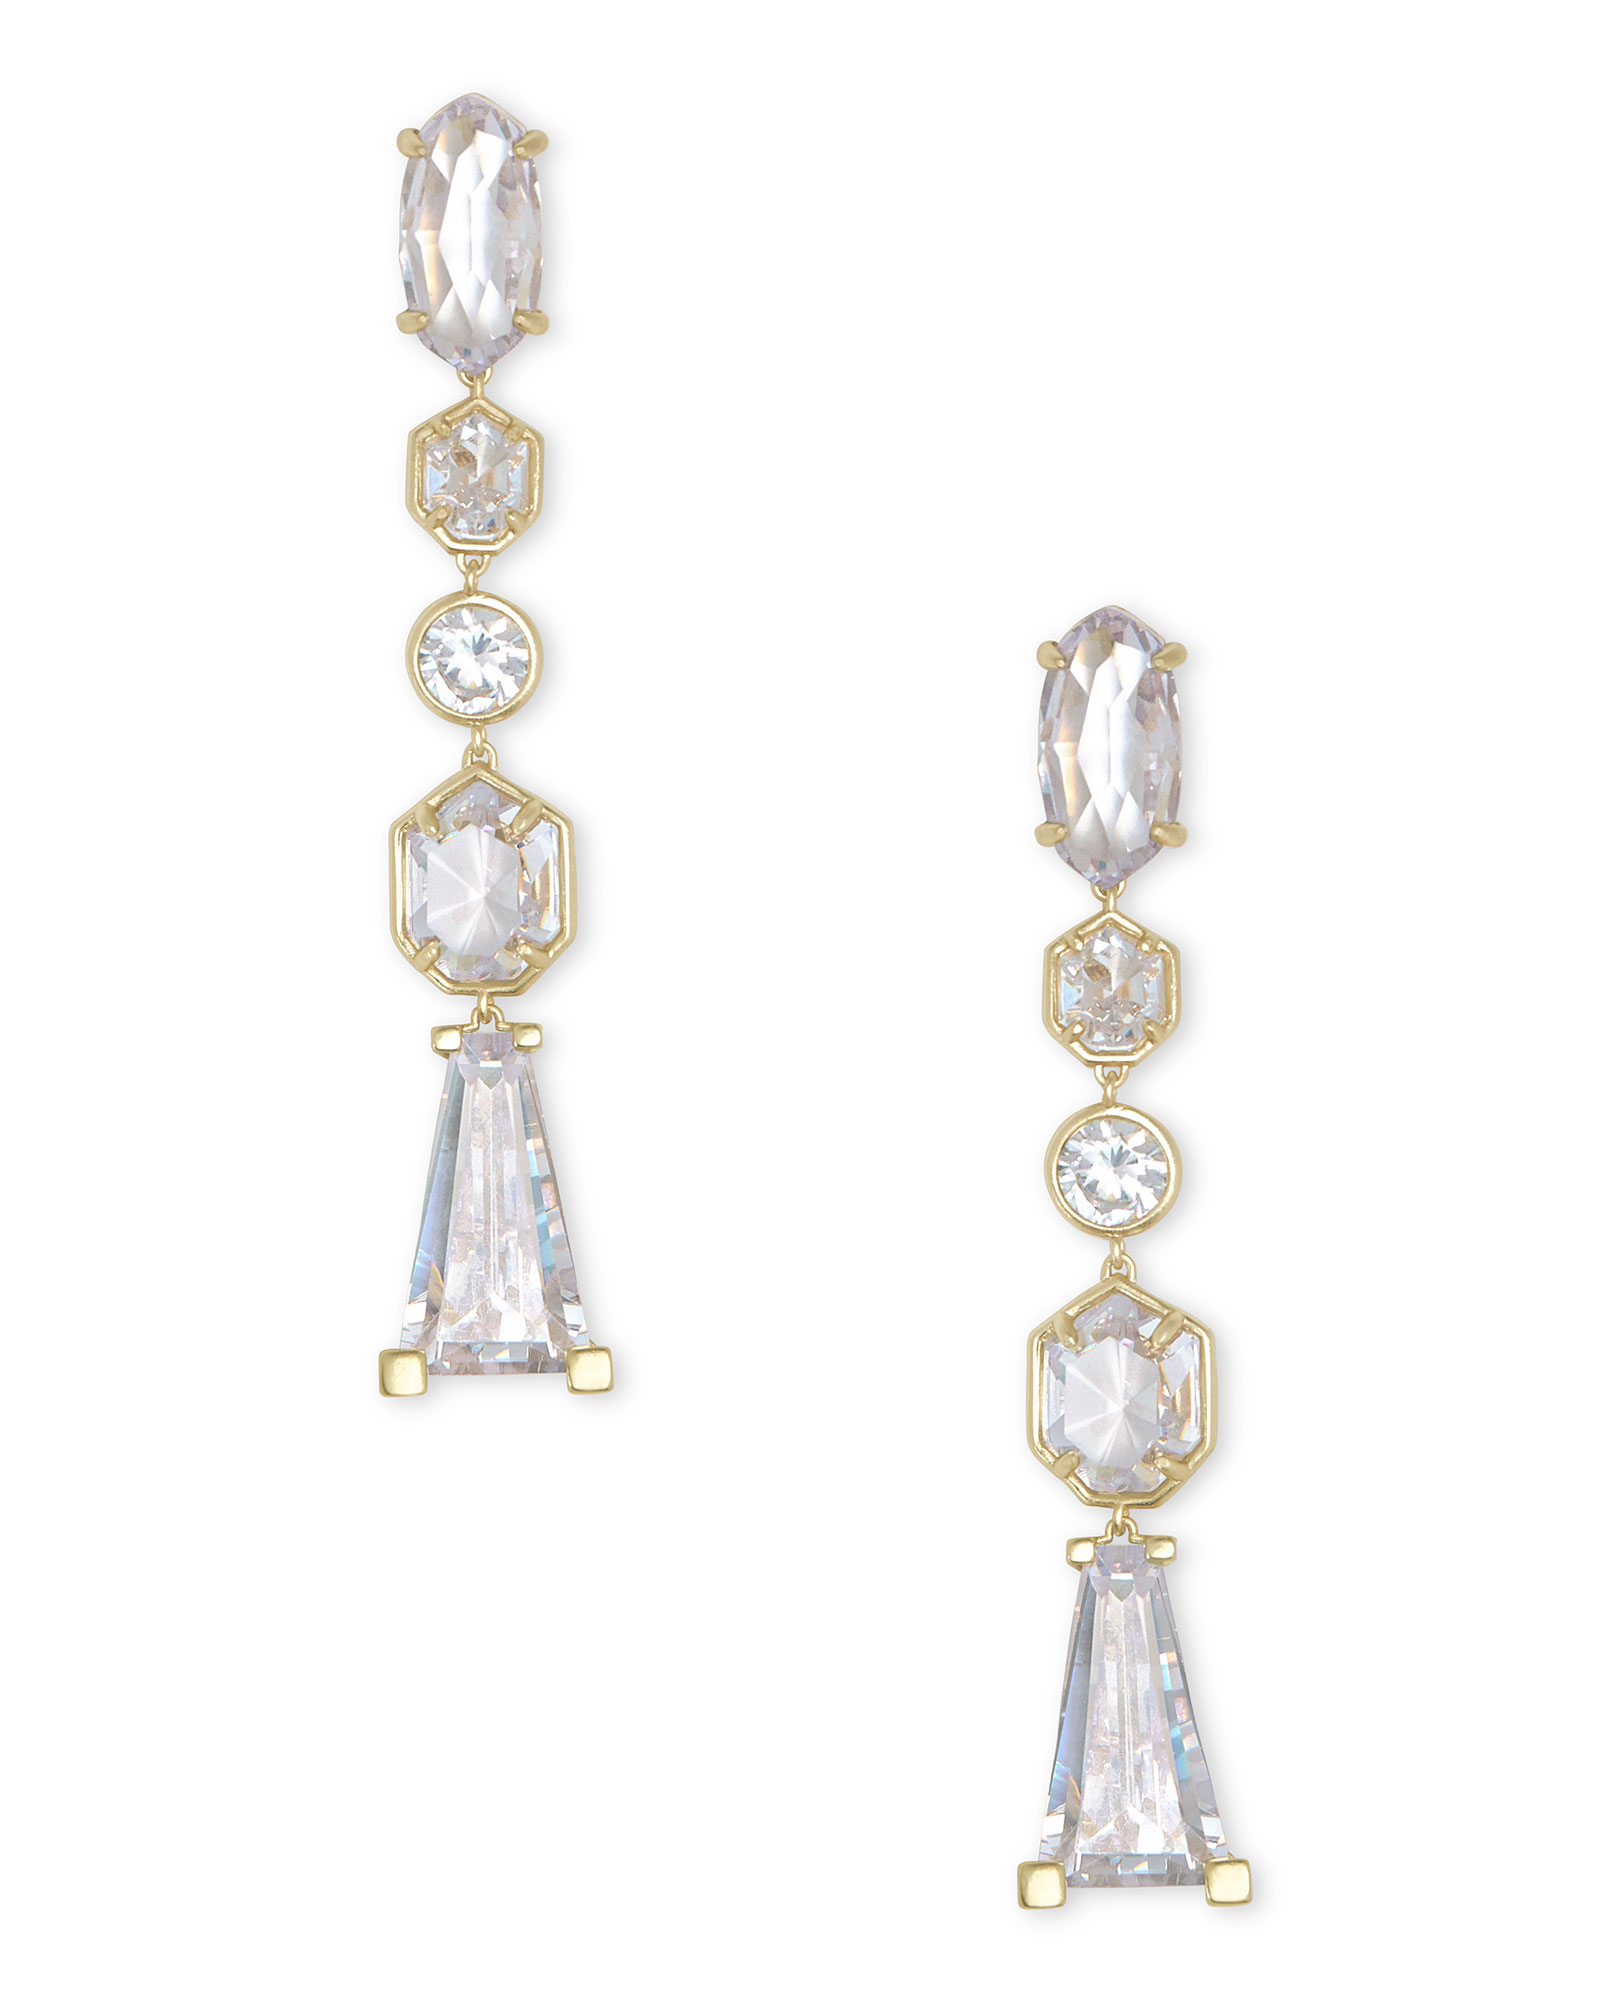 Gracelynn Gold Statement Earrings in Lustre Glass